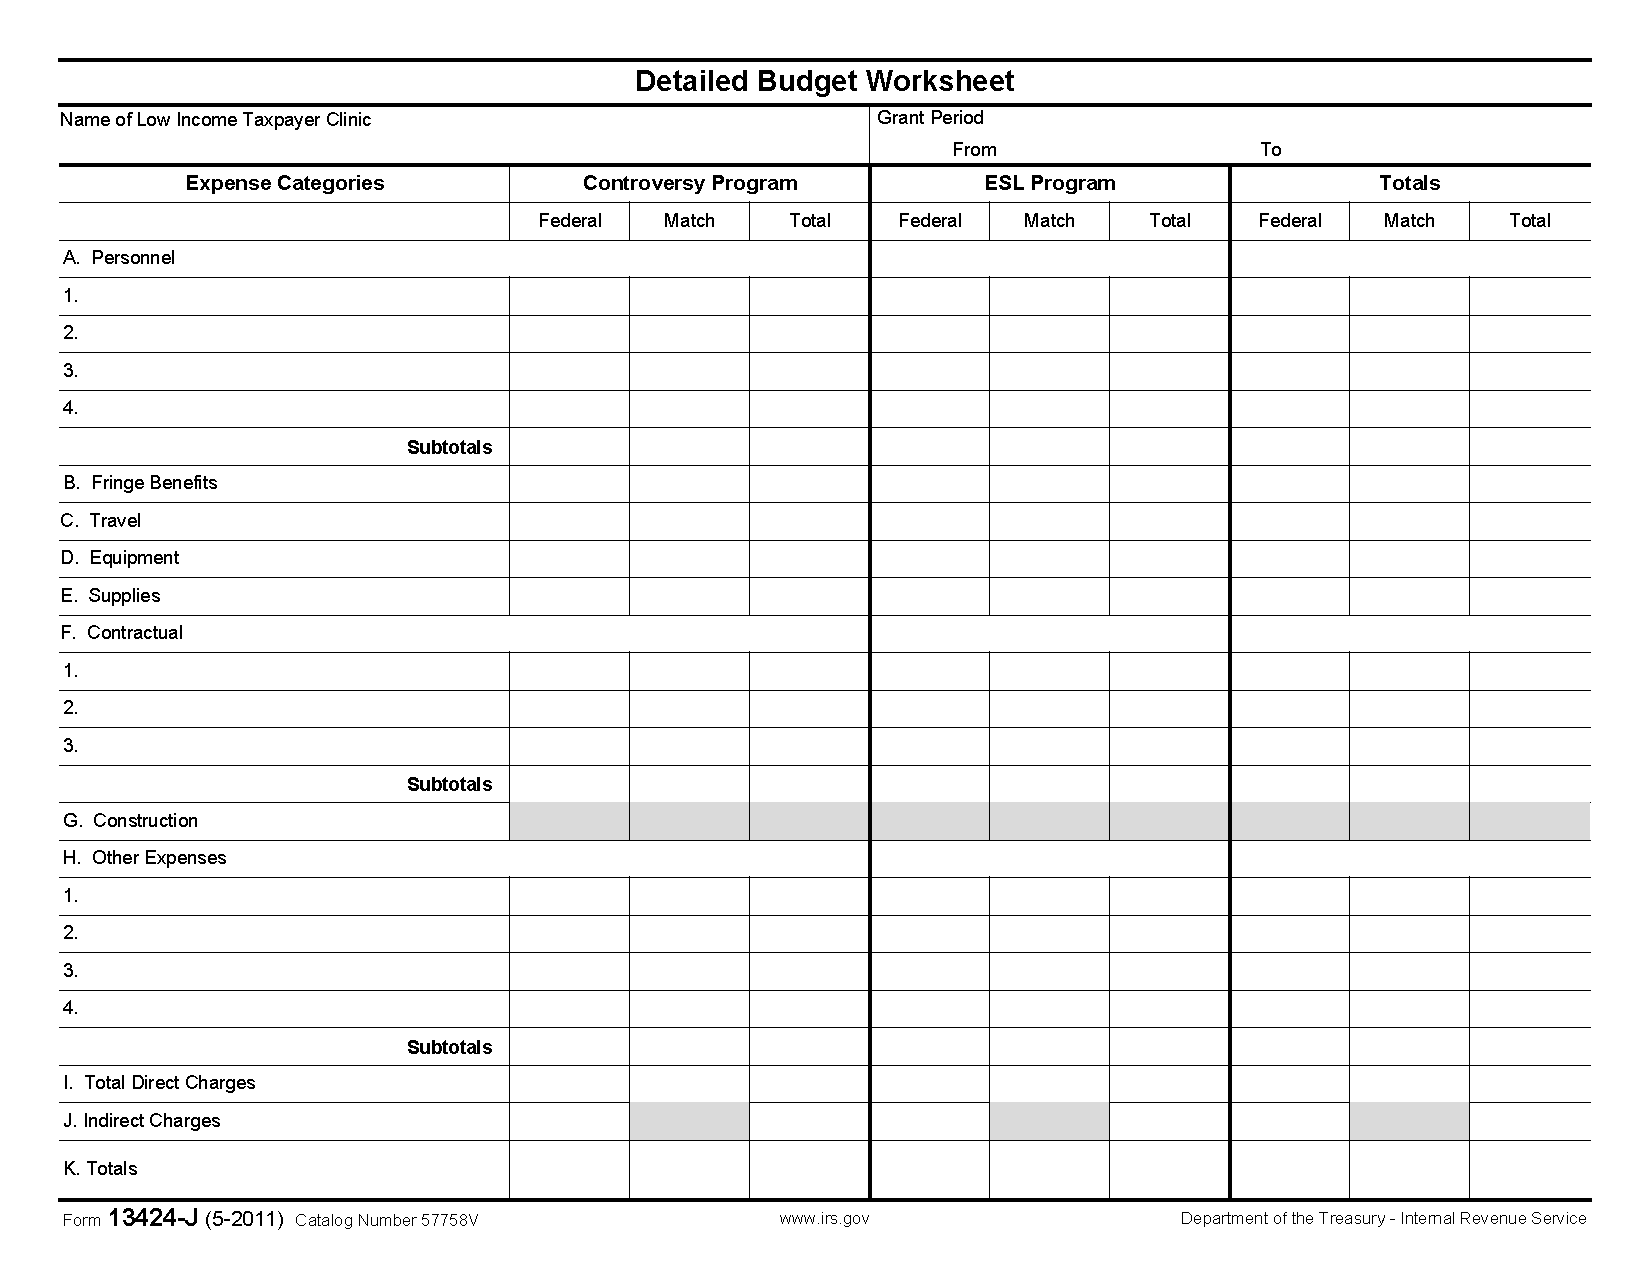 Form 13424 J Low Income Tax Clinic   Detailed Budget Worksheet